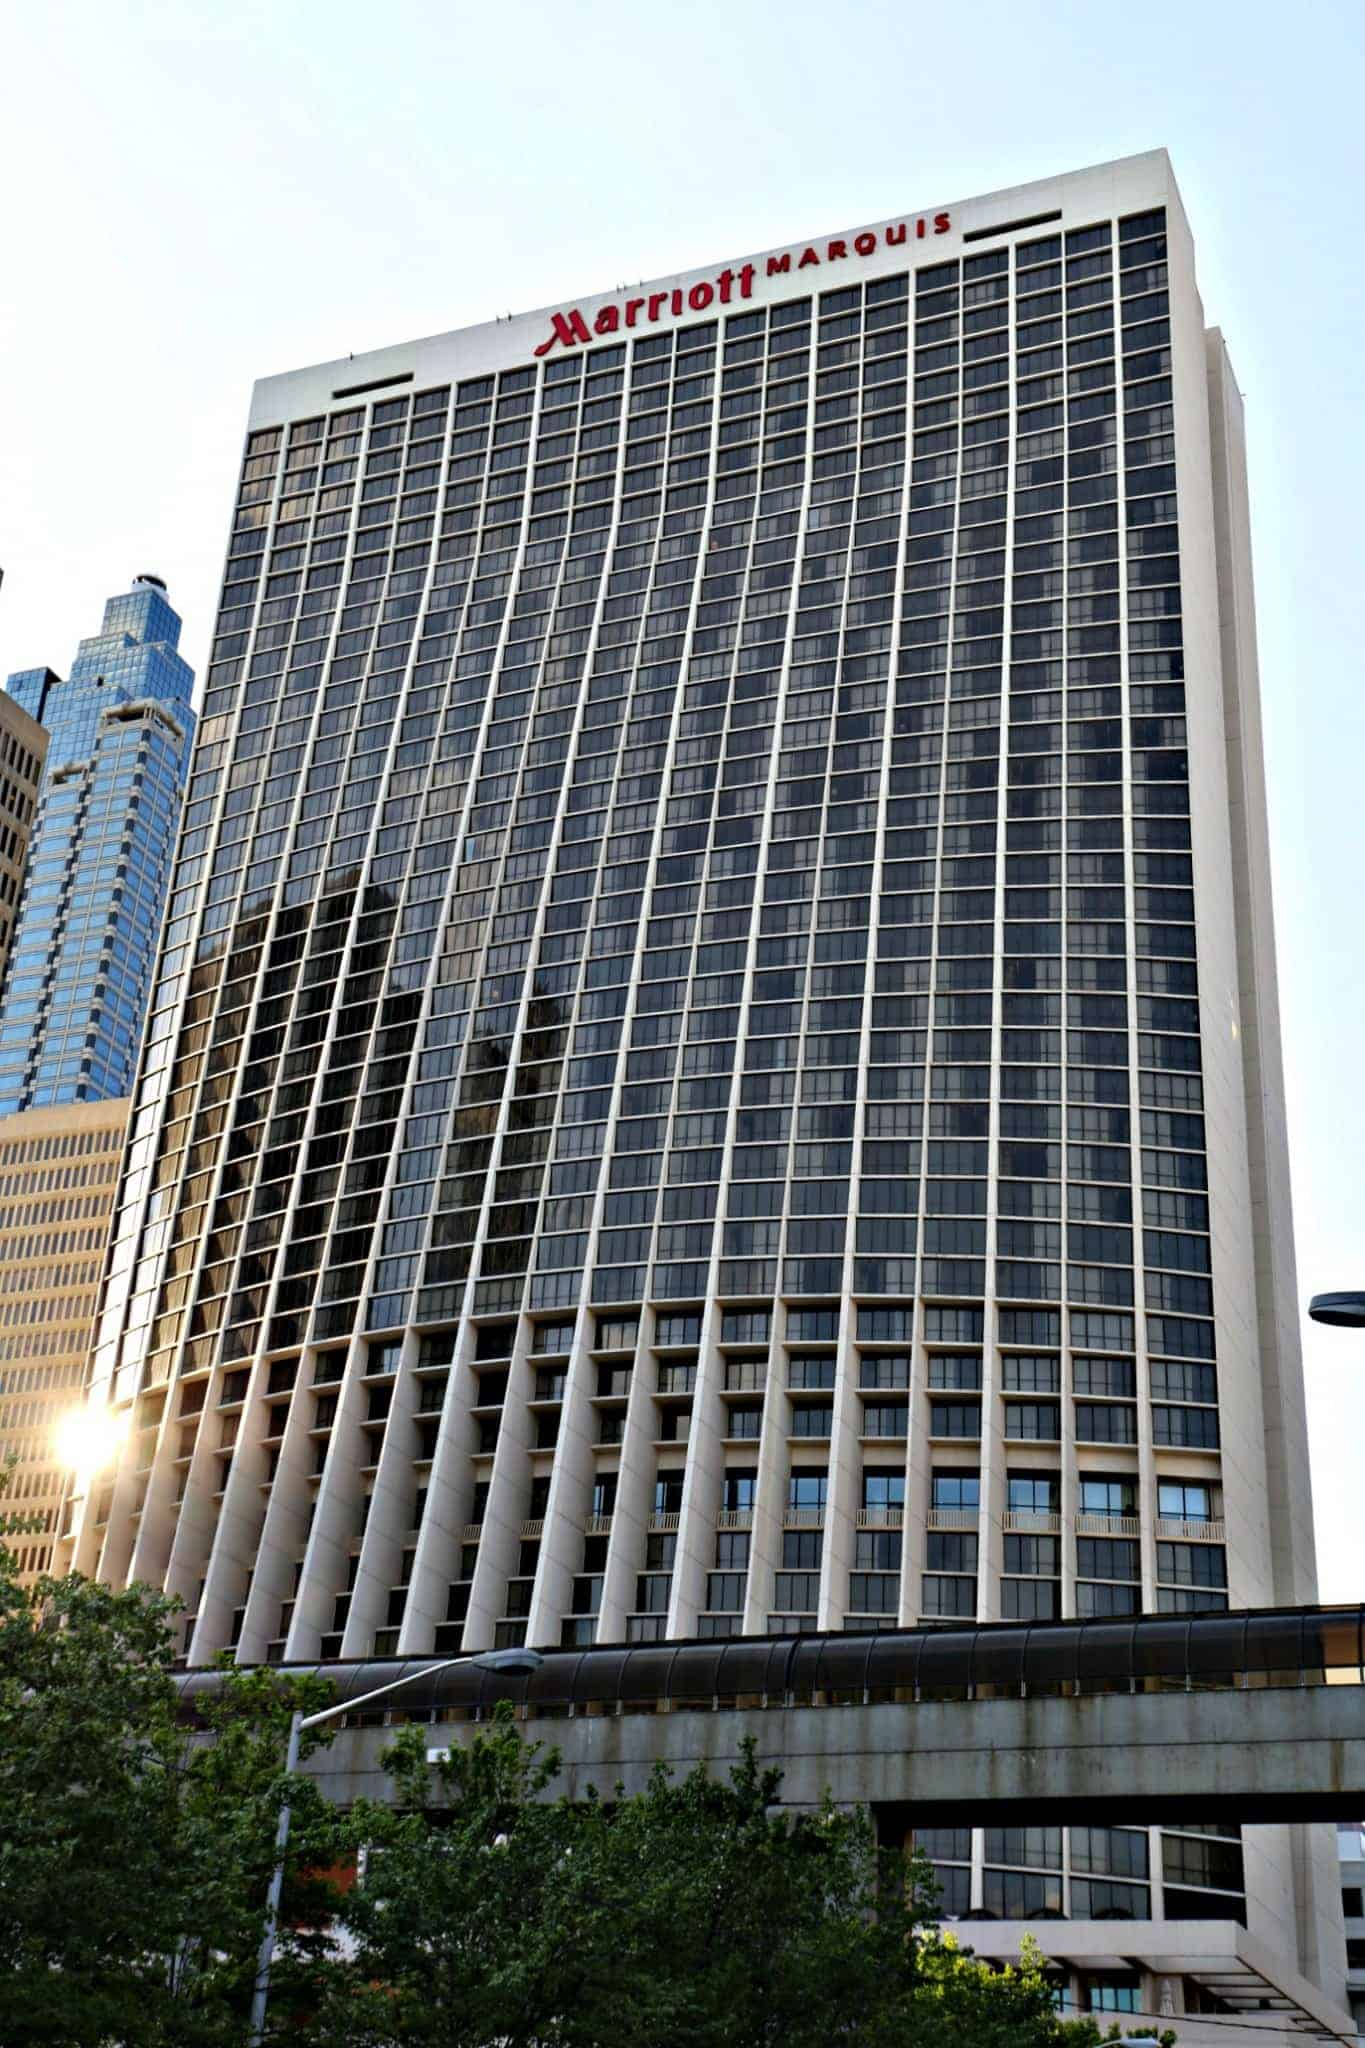 The Atlanta Marriott Marquis